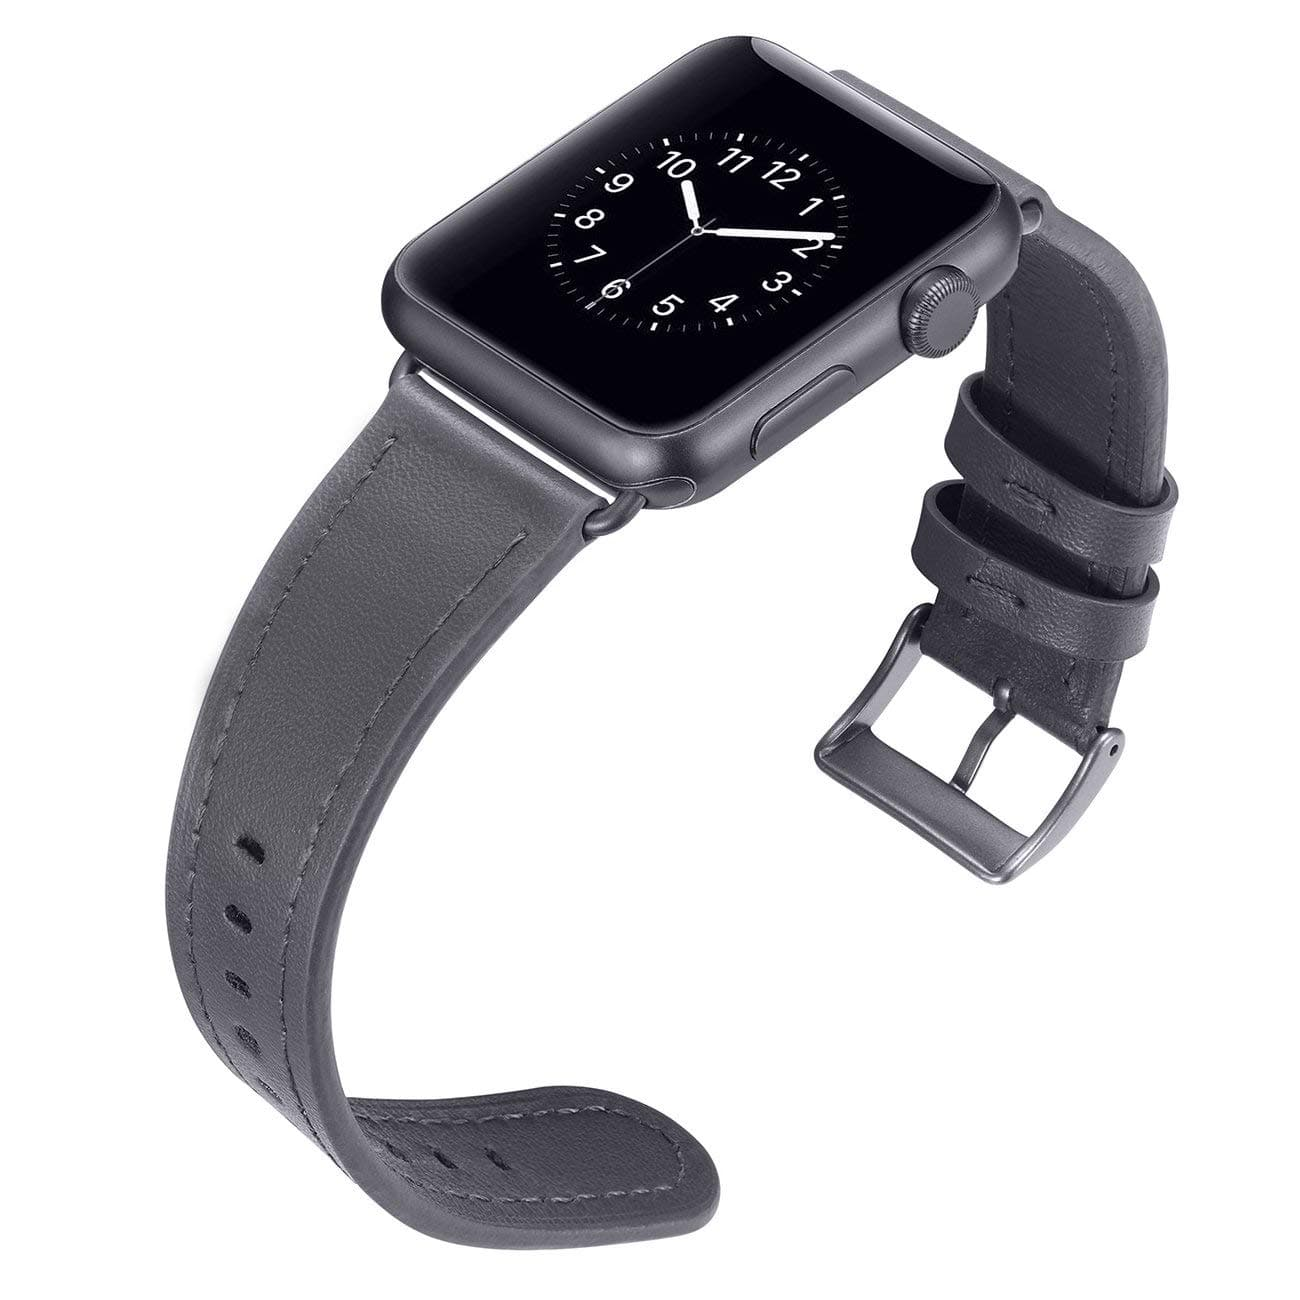 Apple Watch Series 1,2,3 Genuine Leather Band 42mm Space Gray $3.99 @Amazon